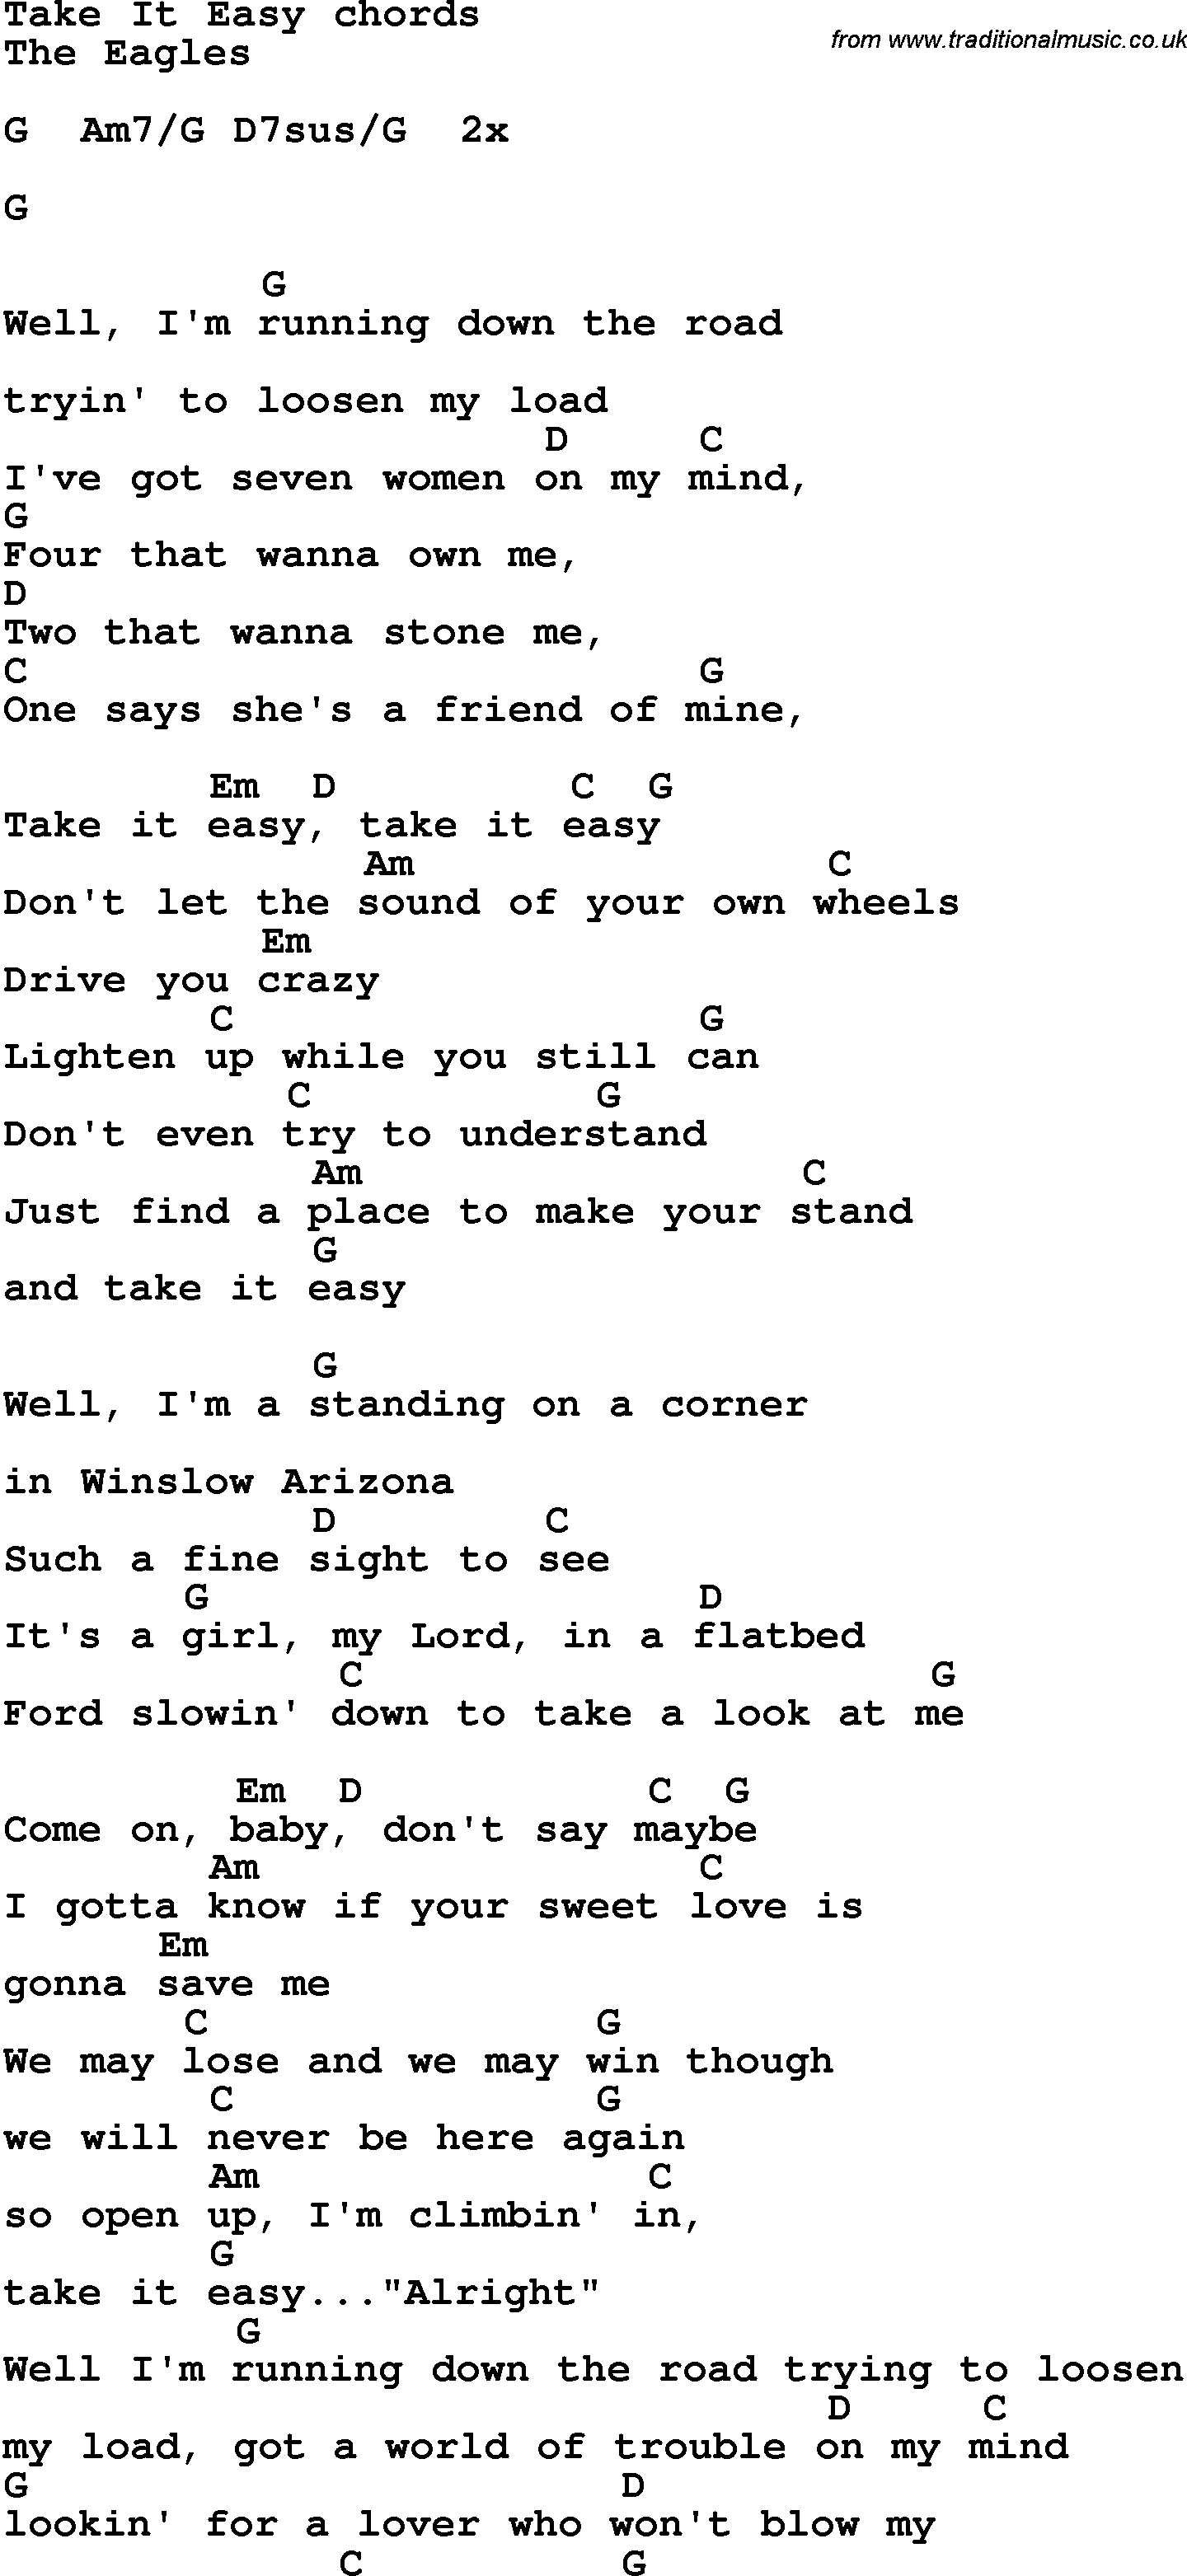 Take It Easy Chords Song Lyrics With Guitar Chords For Take It Easy The Eagles